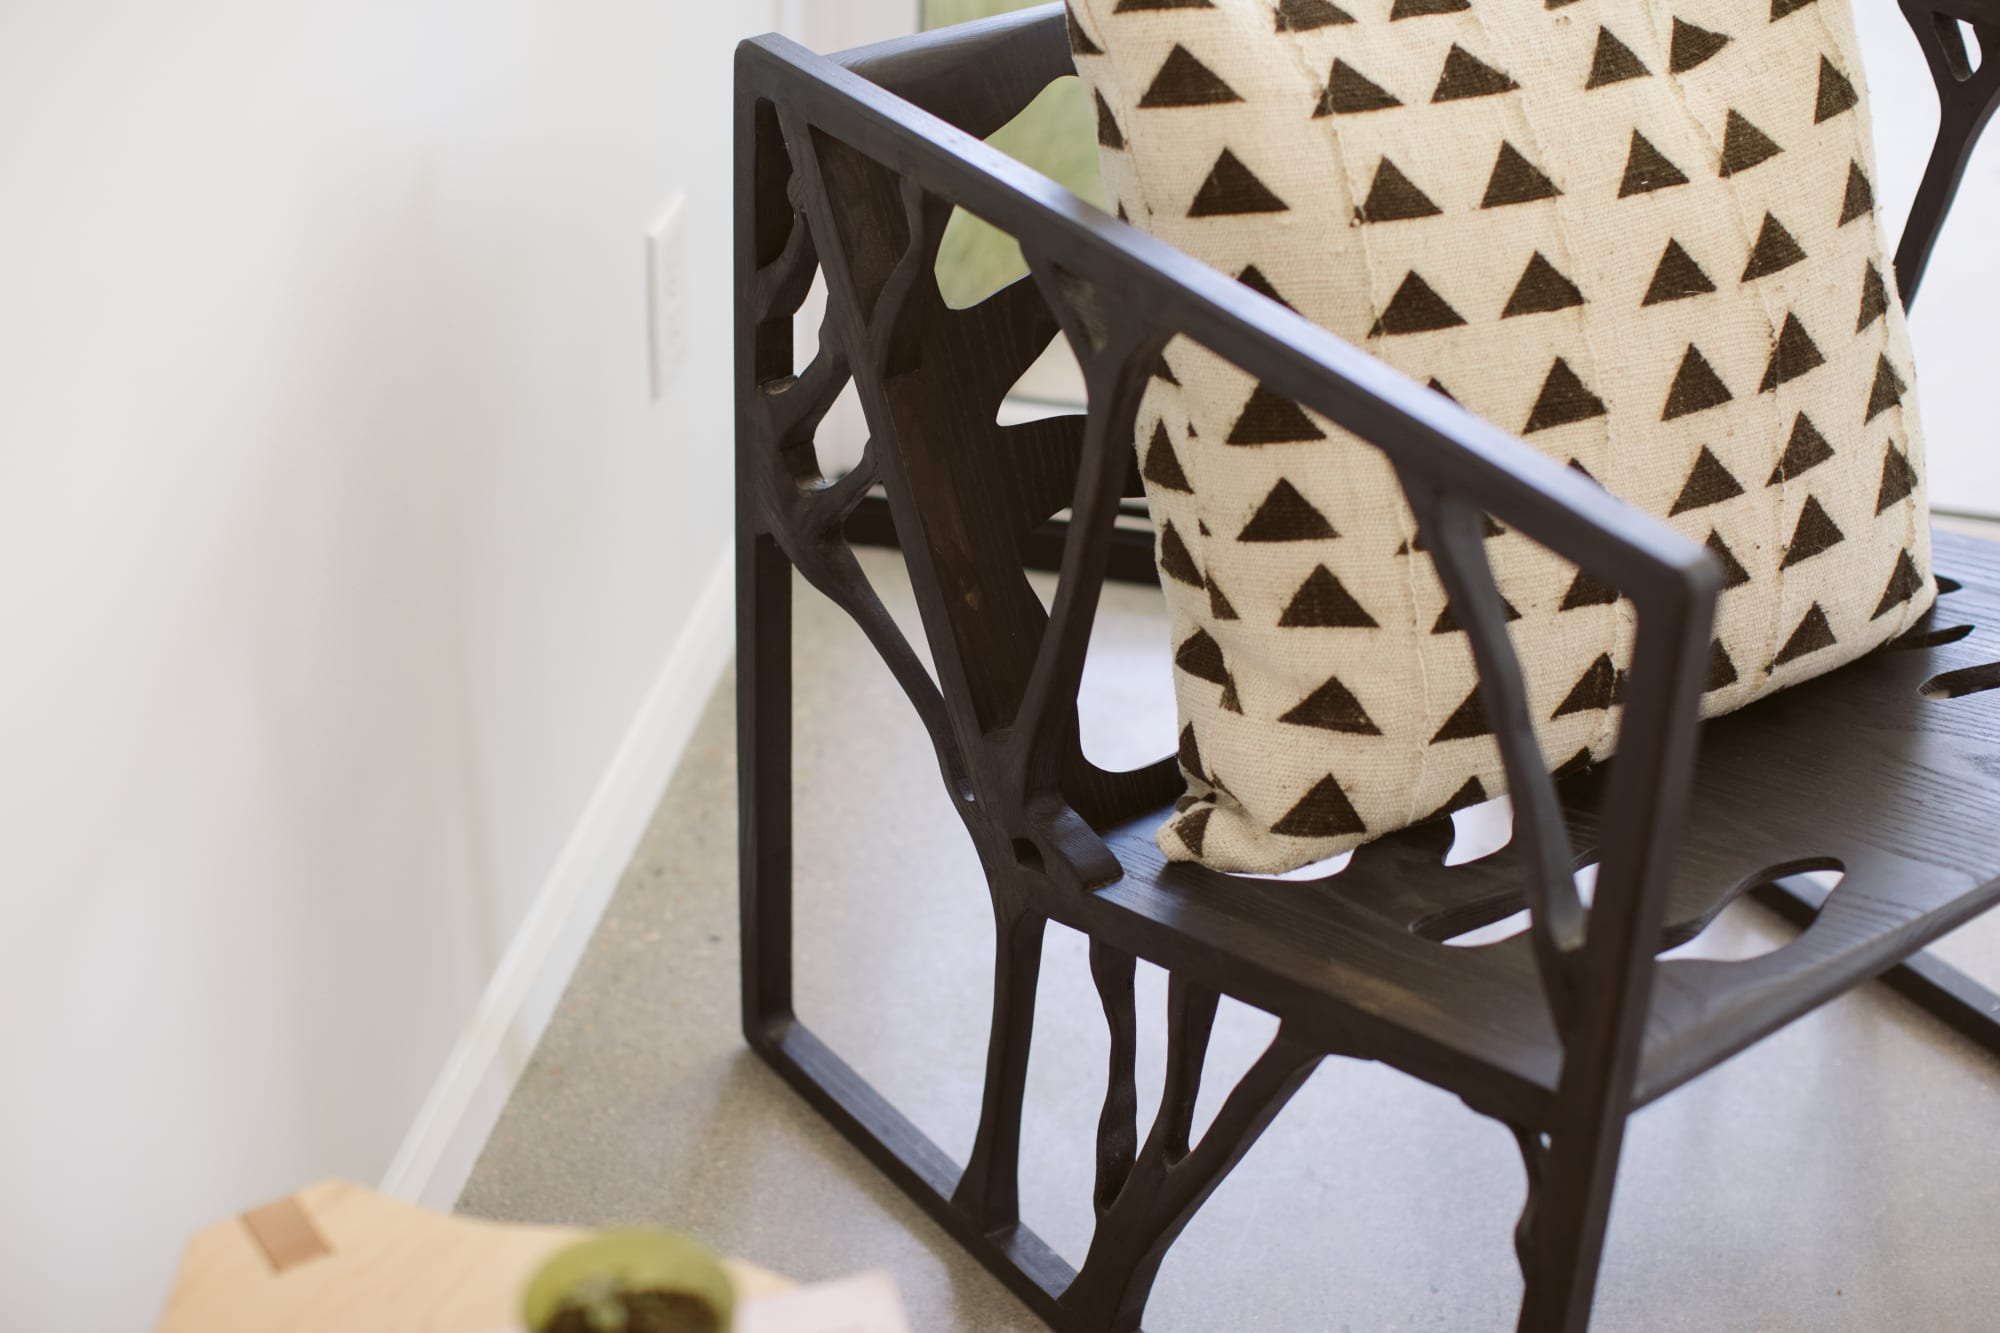 Chairs by Housefish seen at Private Residence | Denver, CO, Denver - Dispersion Chair